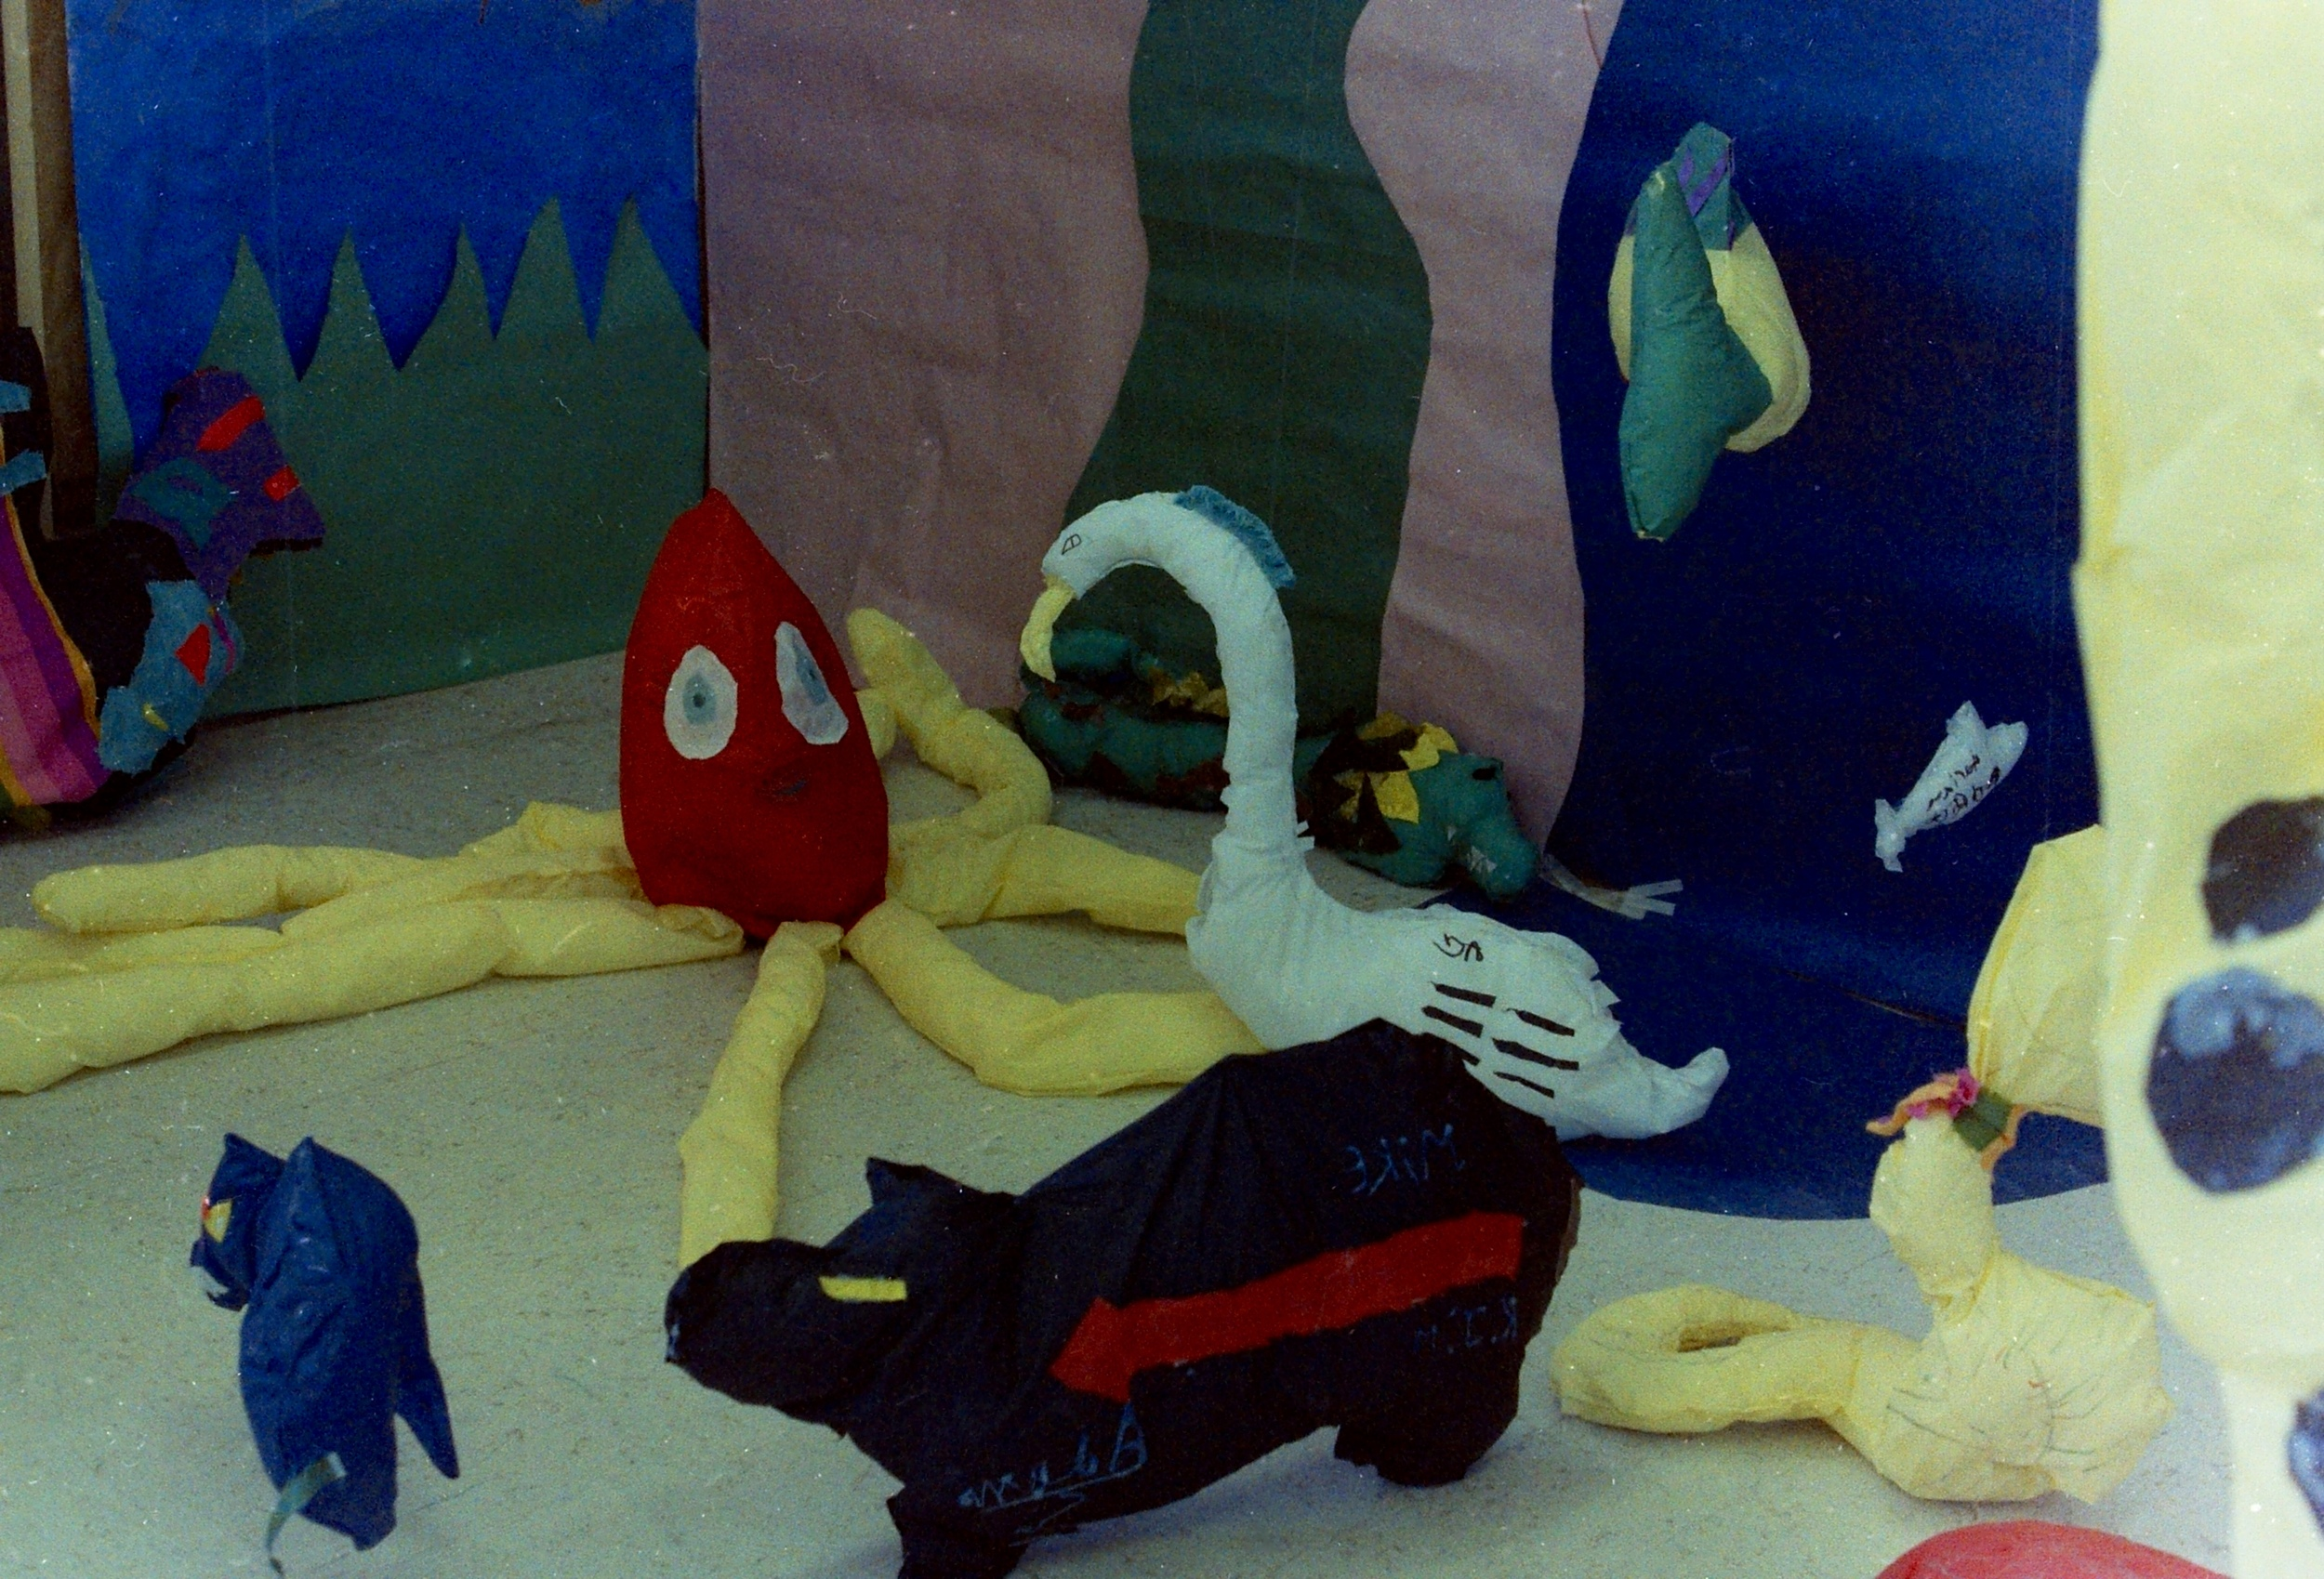 The Jungle project, made with Special Education students at Pojoaque elementary school. In a recording session, students made animal sounds to mimic the animal that they had created. The recorded sounds became a part of the final installation, the background was inspired by Matisse's cut-outs.